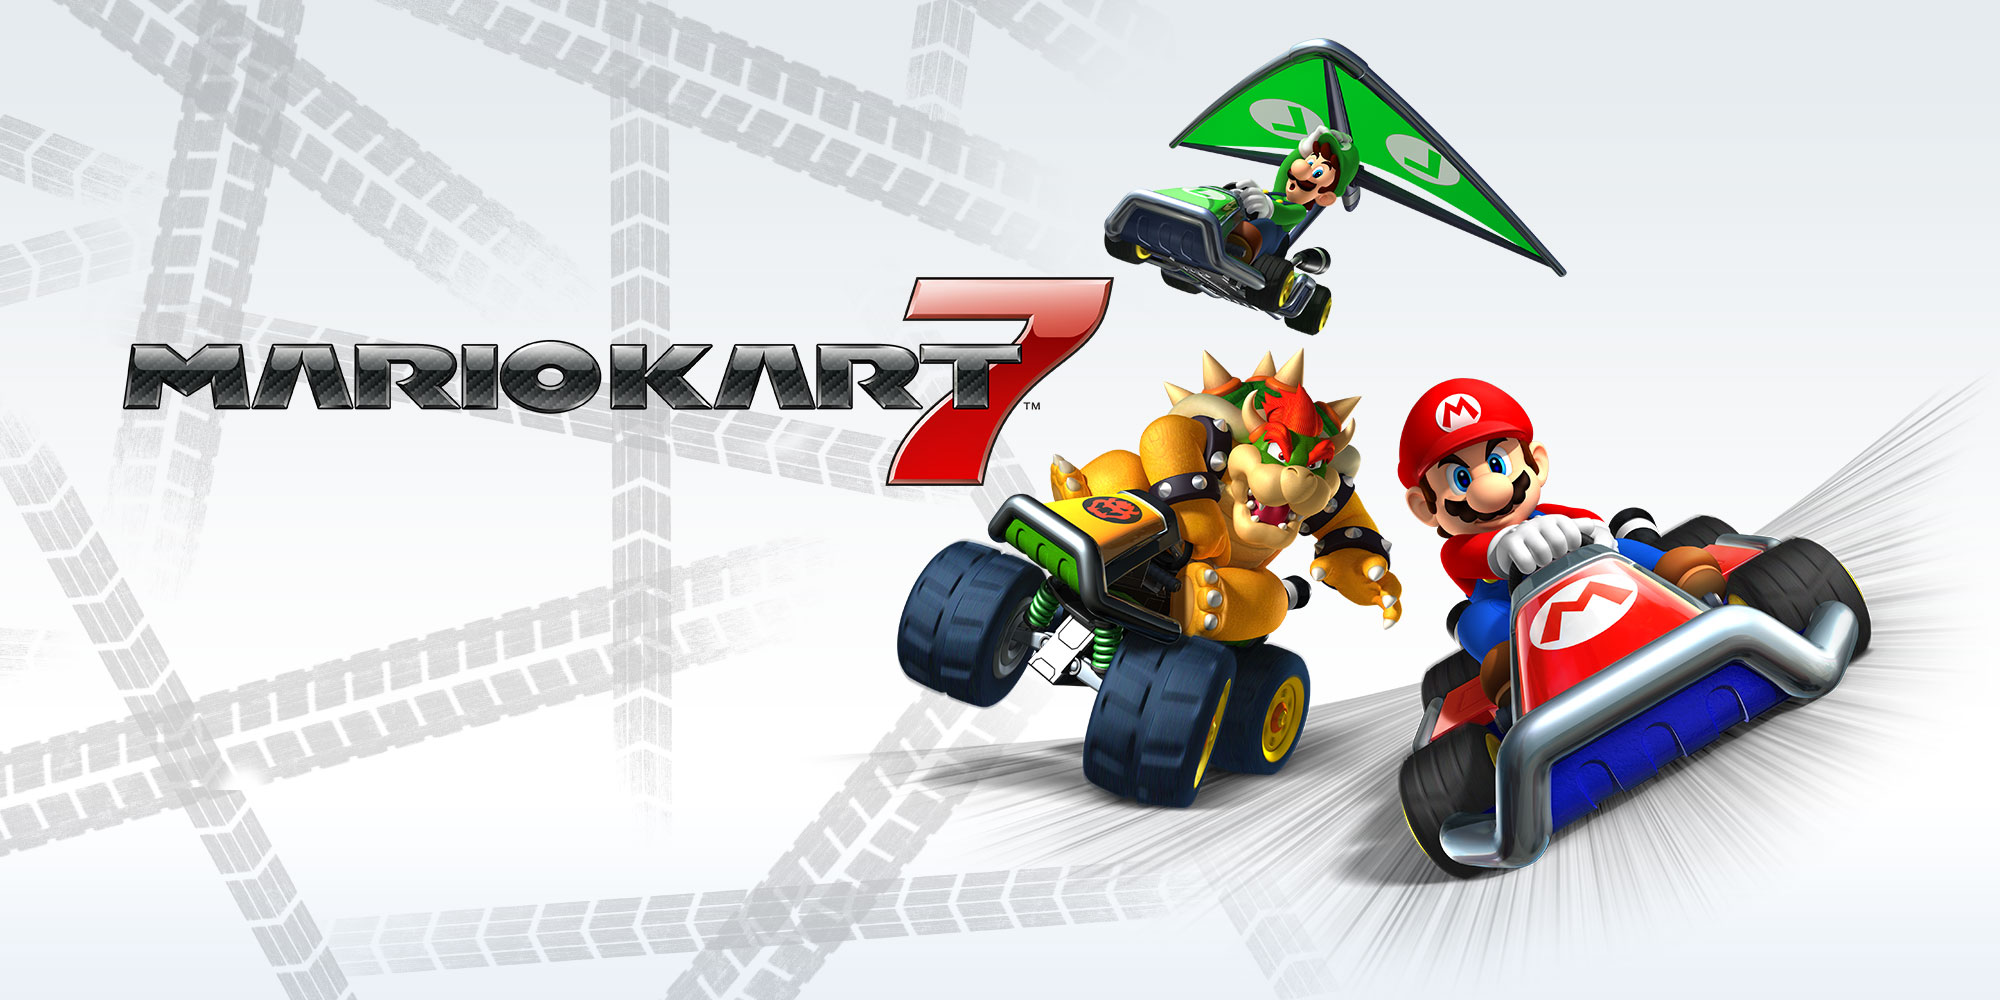 mario kart 7 nintendo 3ds juegos nintendo. Black Bedroom Furniture Sets. Home Design Ideas